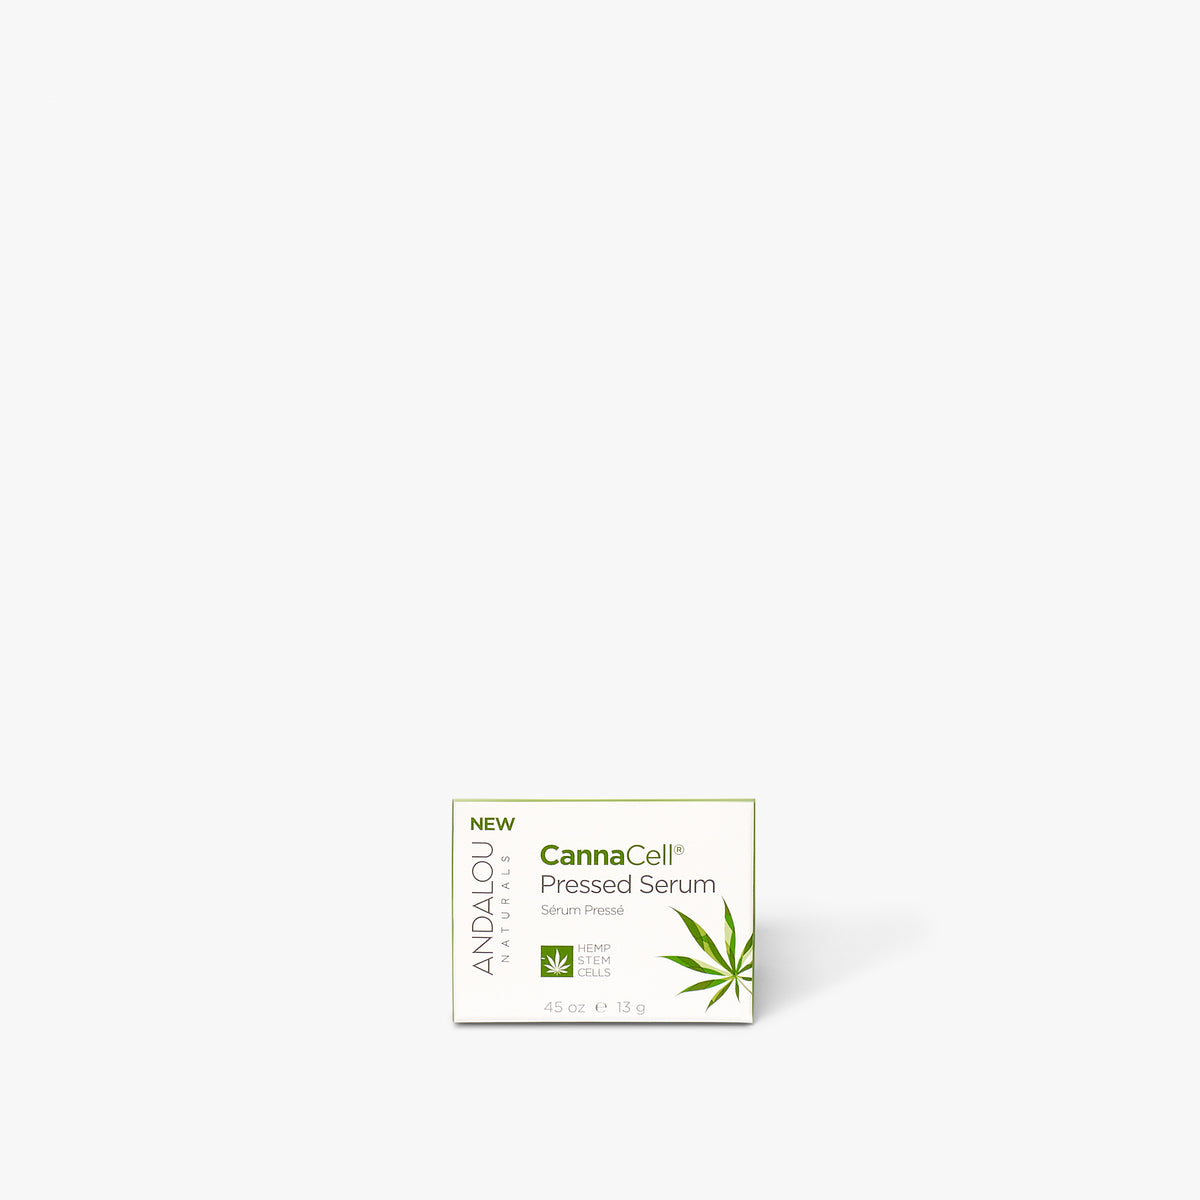 CannaCell Pressed Serum